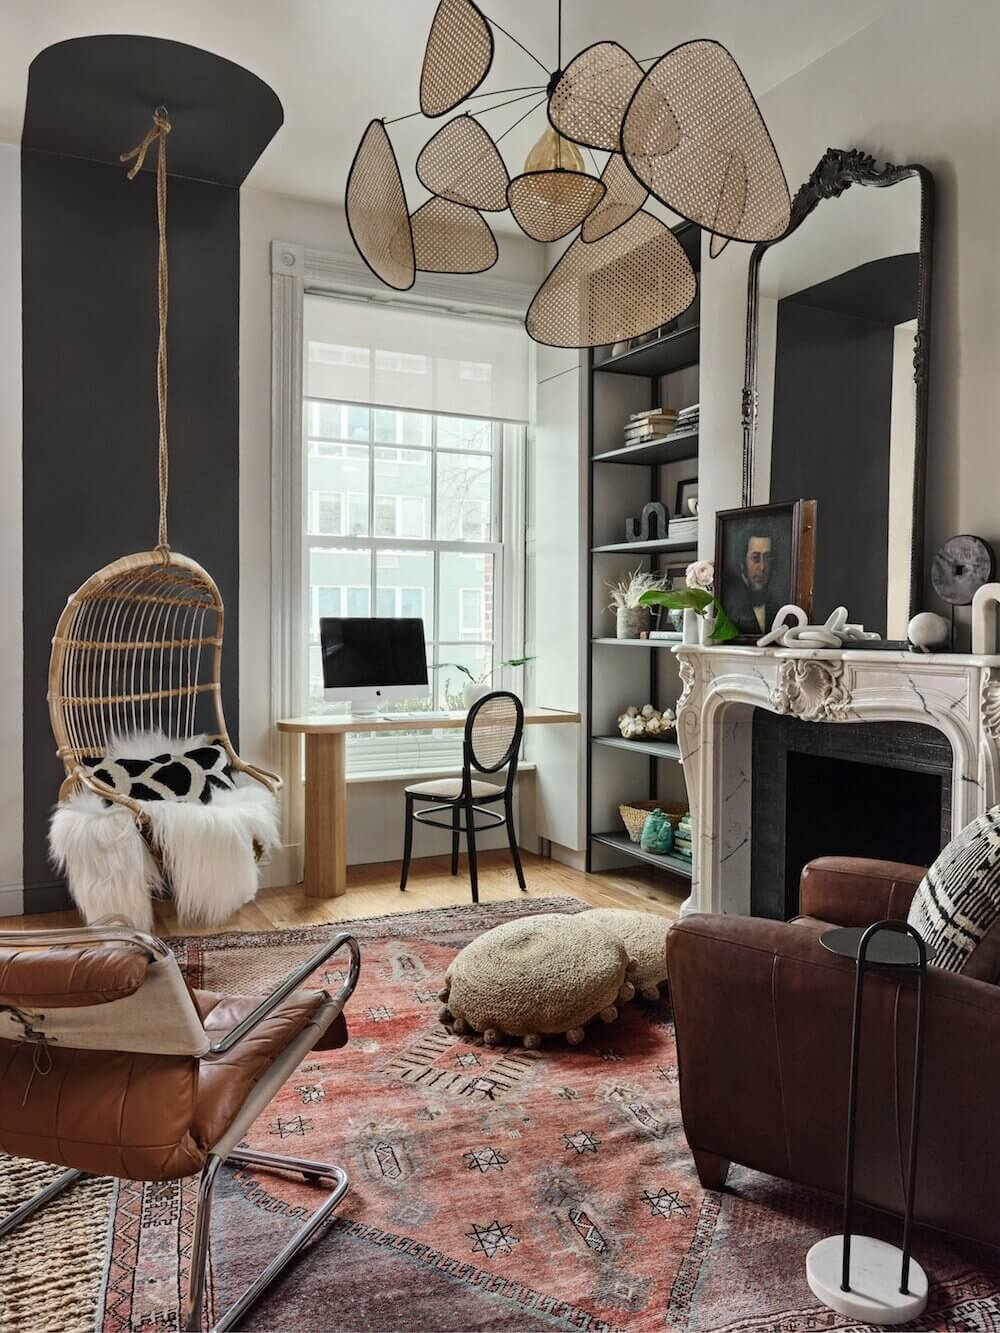 A Warm Brooklyn Brownstone Filled with Interesting Home Decor Ideas